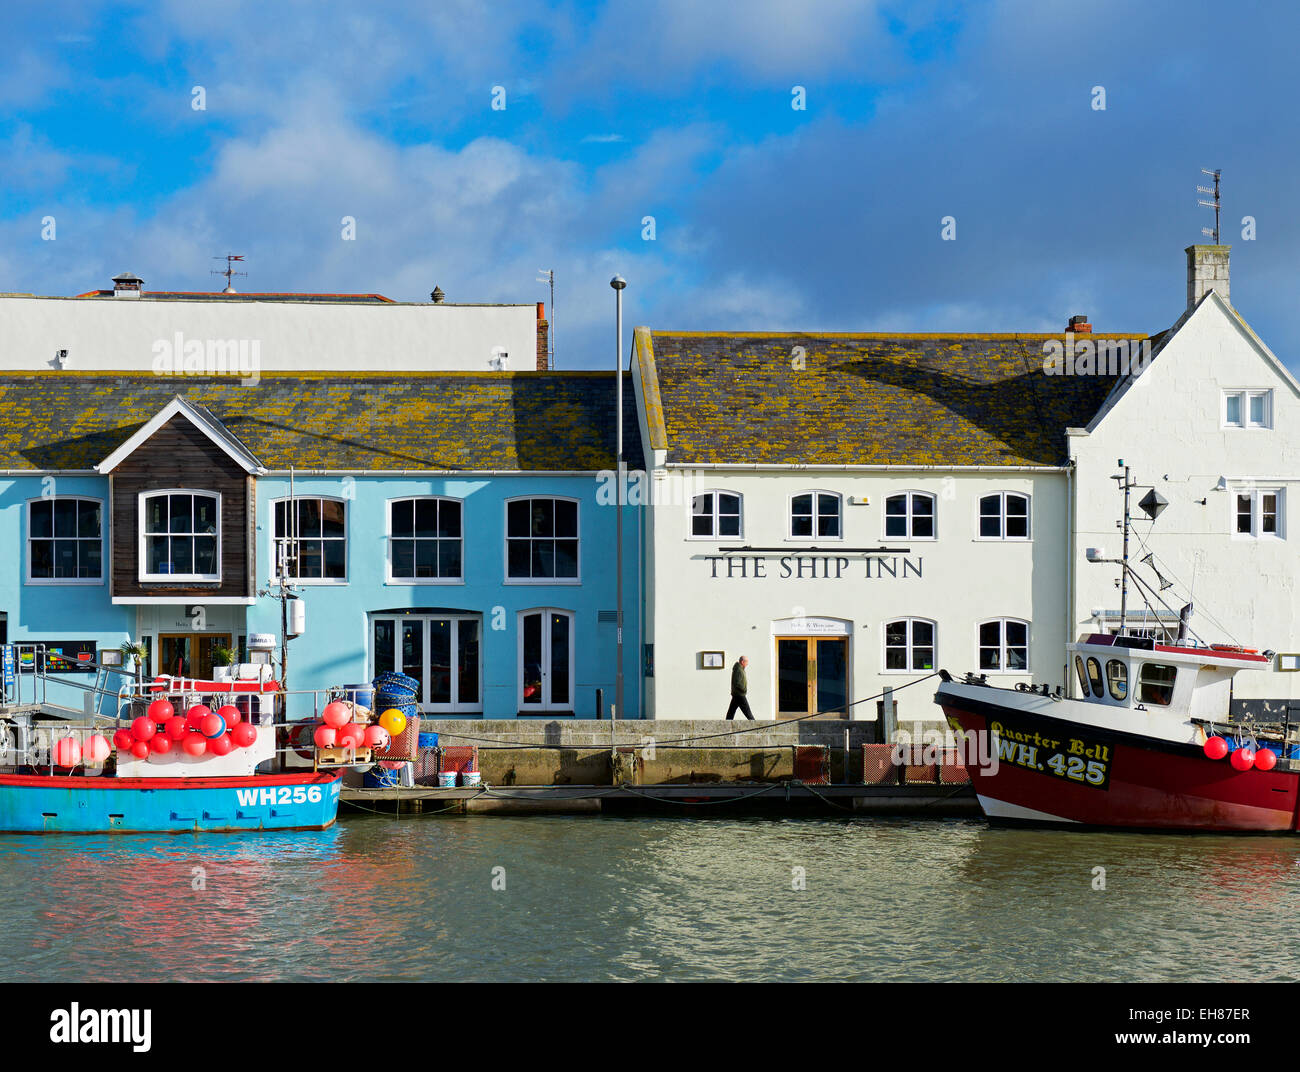 The Ship Inn, Weymouth, Dorset, England UK - Stock Image